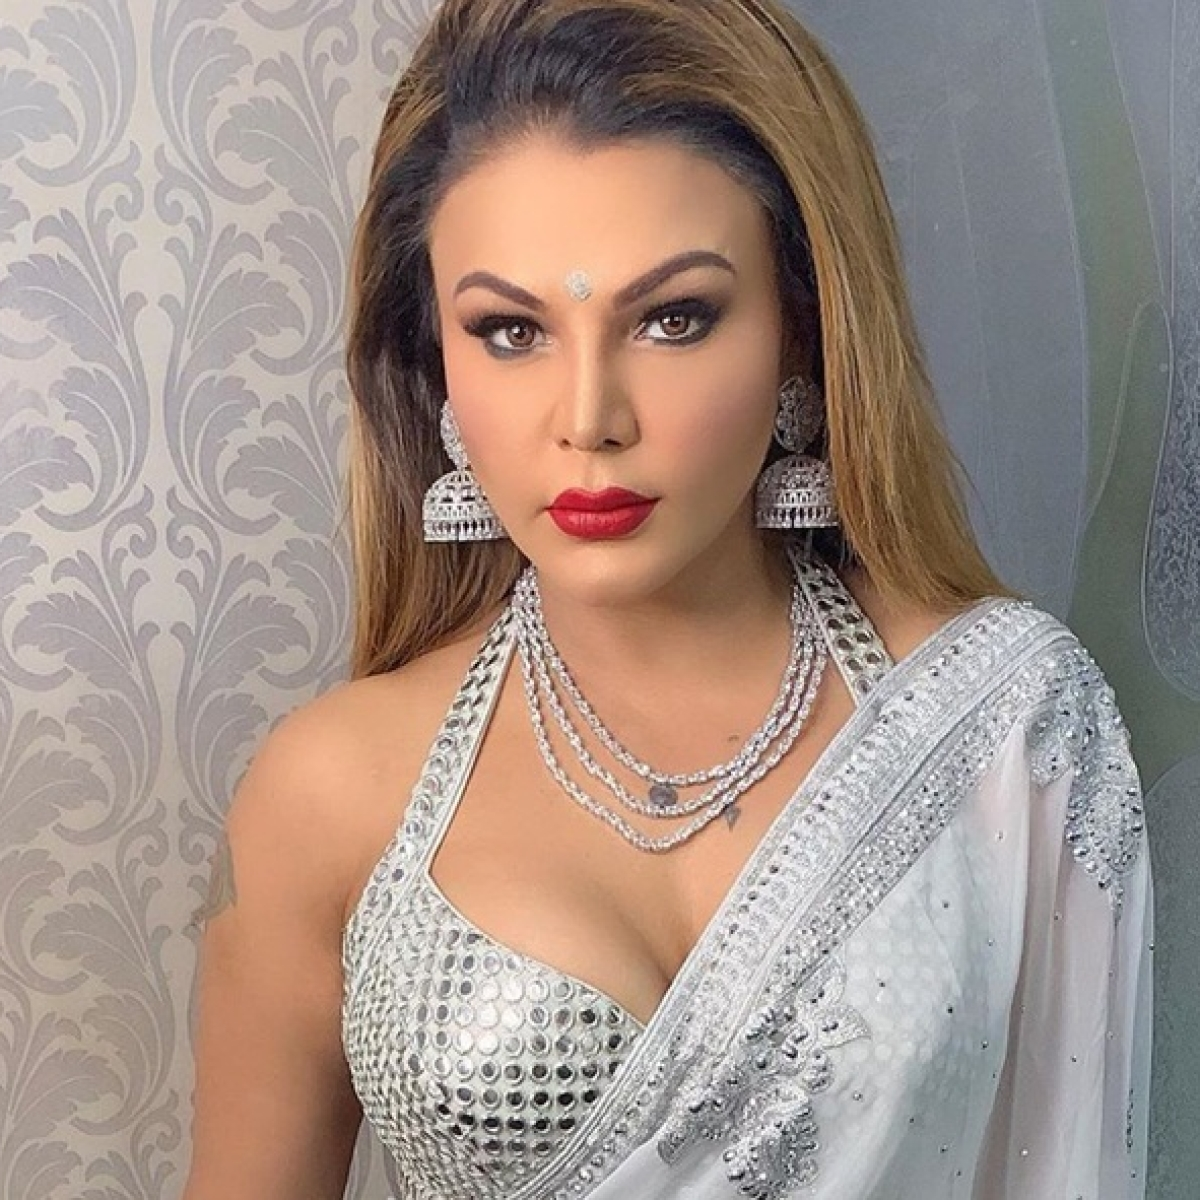 When I used to go for auditions, they would close the door: Rakhi Sawant